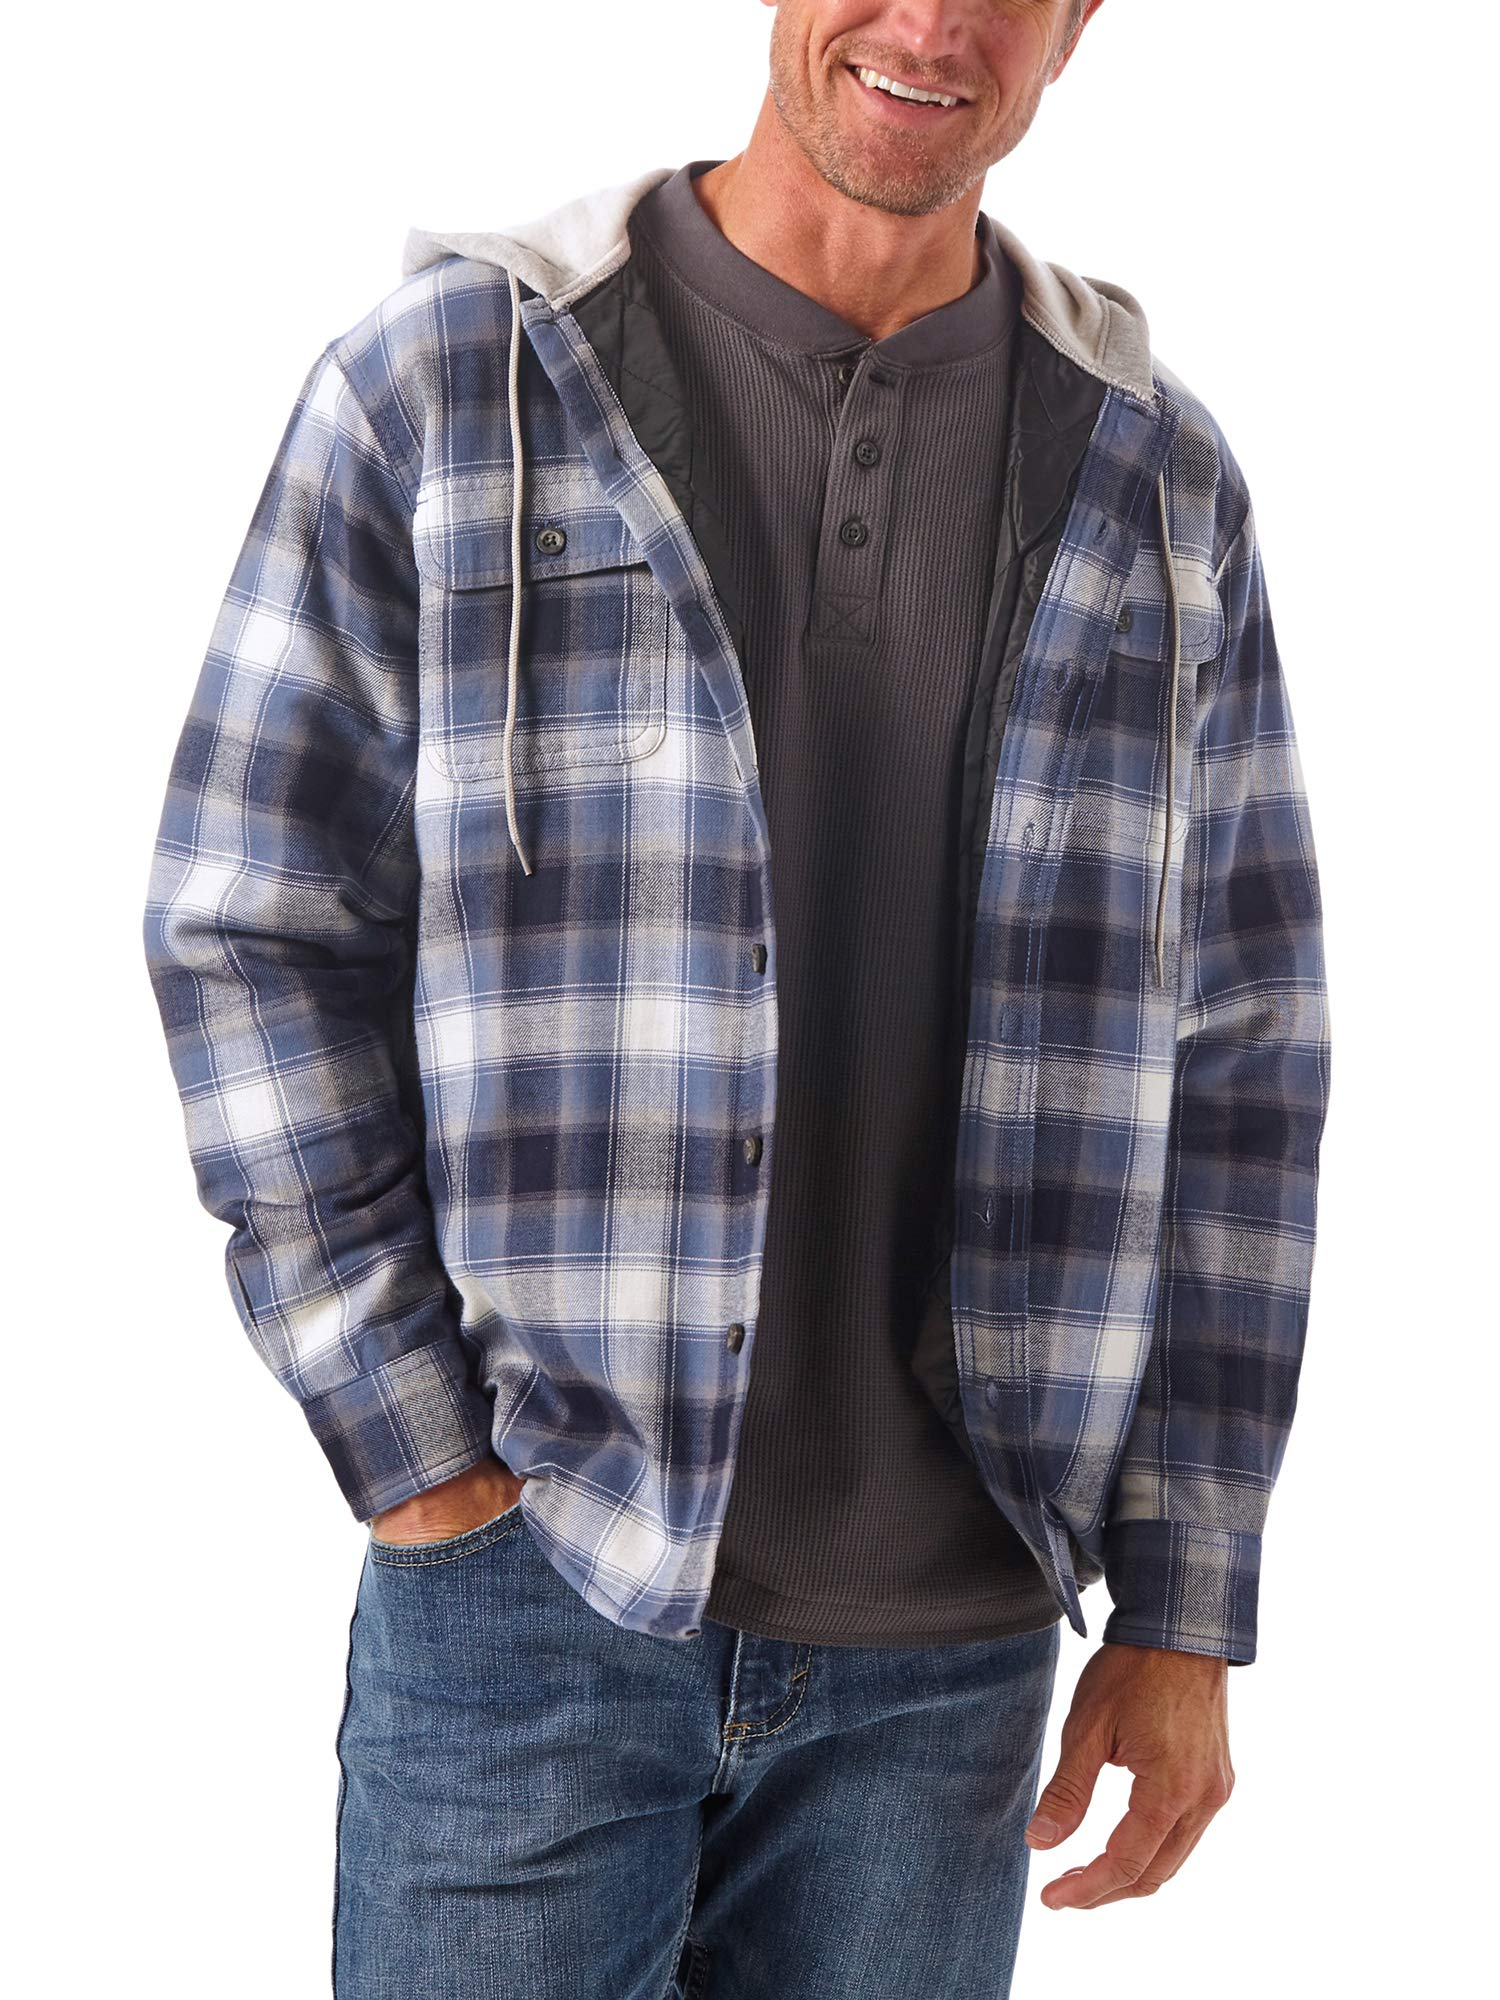 Wrangler Authentics Men's Long Sleeve Quilted Line Flannel Jacket with Hood, Vintage Night, 3X by Wrangler